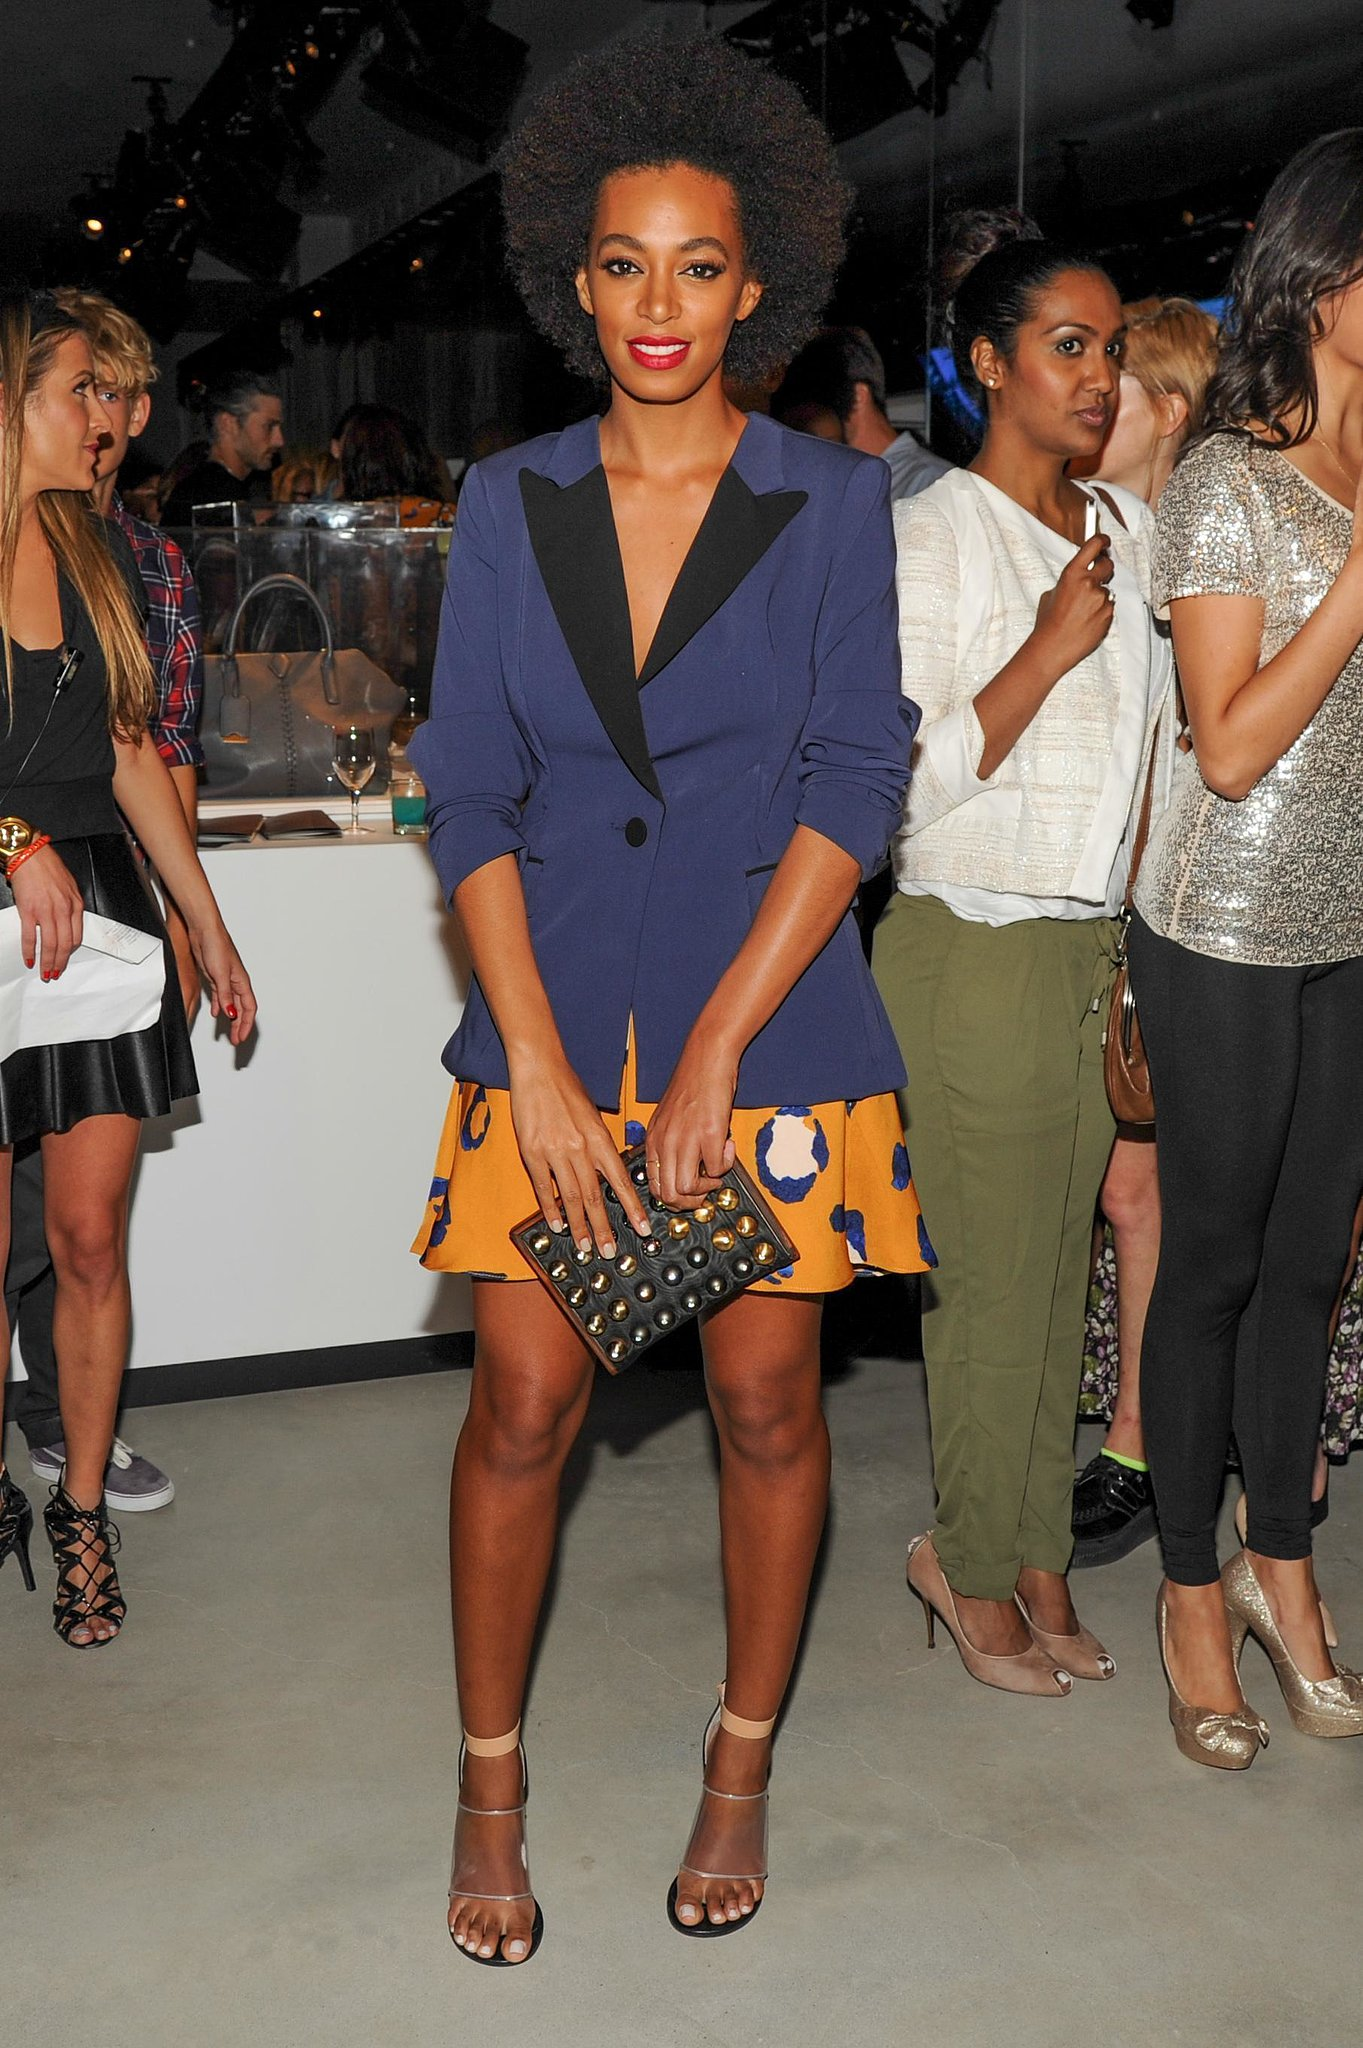 Solange Knowles also attended the Phillip Lim for Target launch party in NYC. She paired a two-toned tuxedo blazer with a leopard skirt for a fun and flirty look.